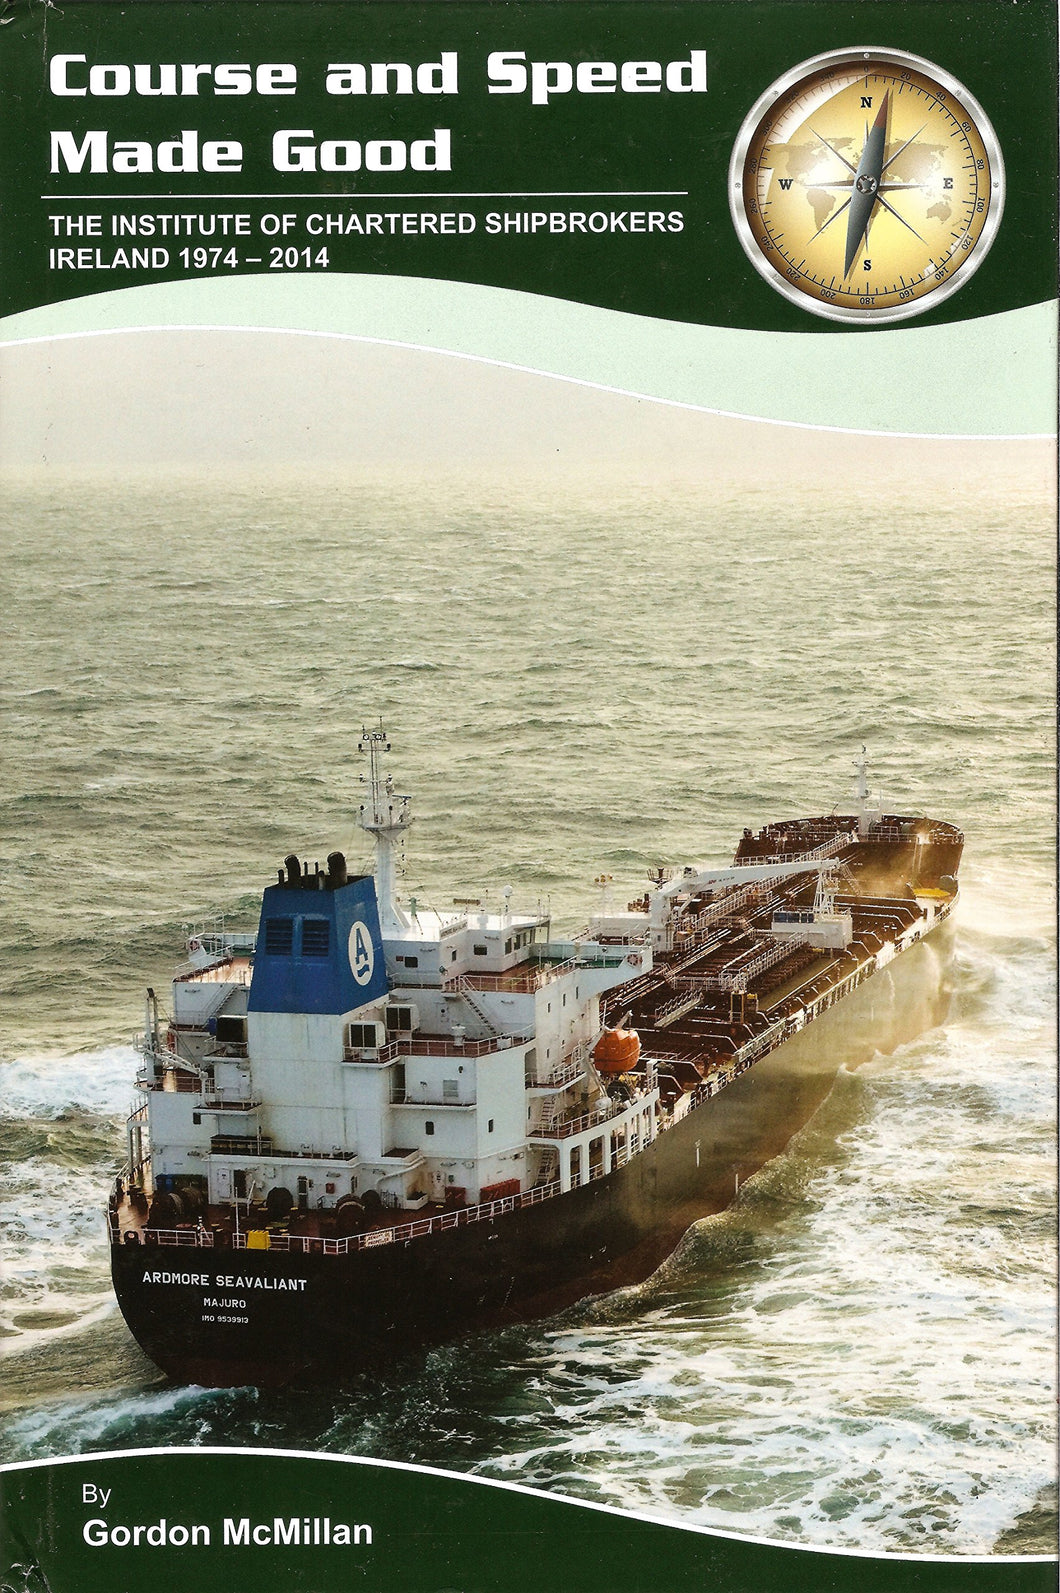 Course and Speed made Good: The Institute of Chartered Shipbrokers Ireland 1974-2014